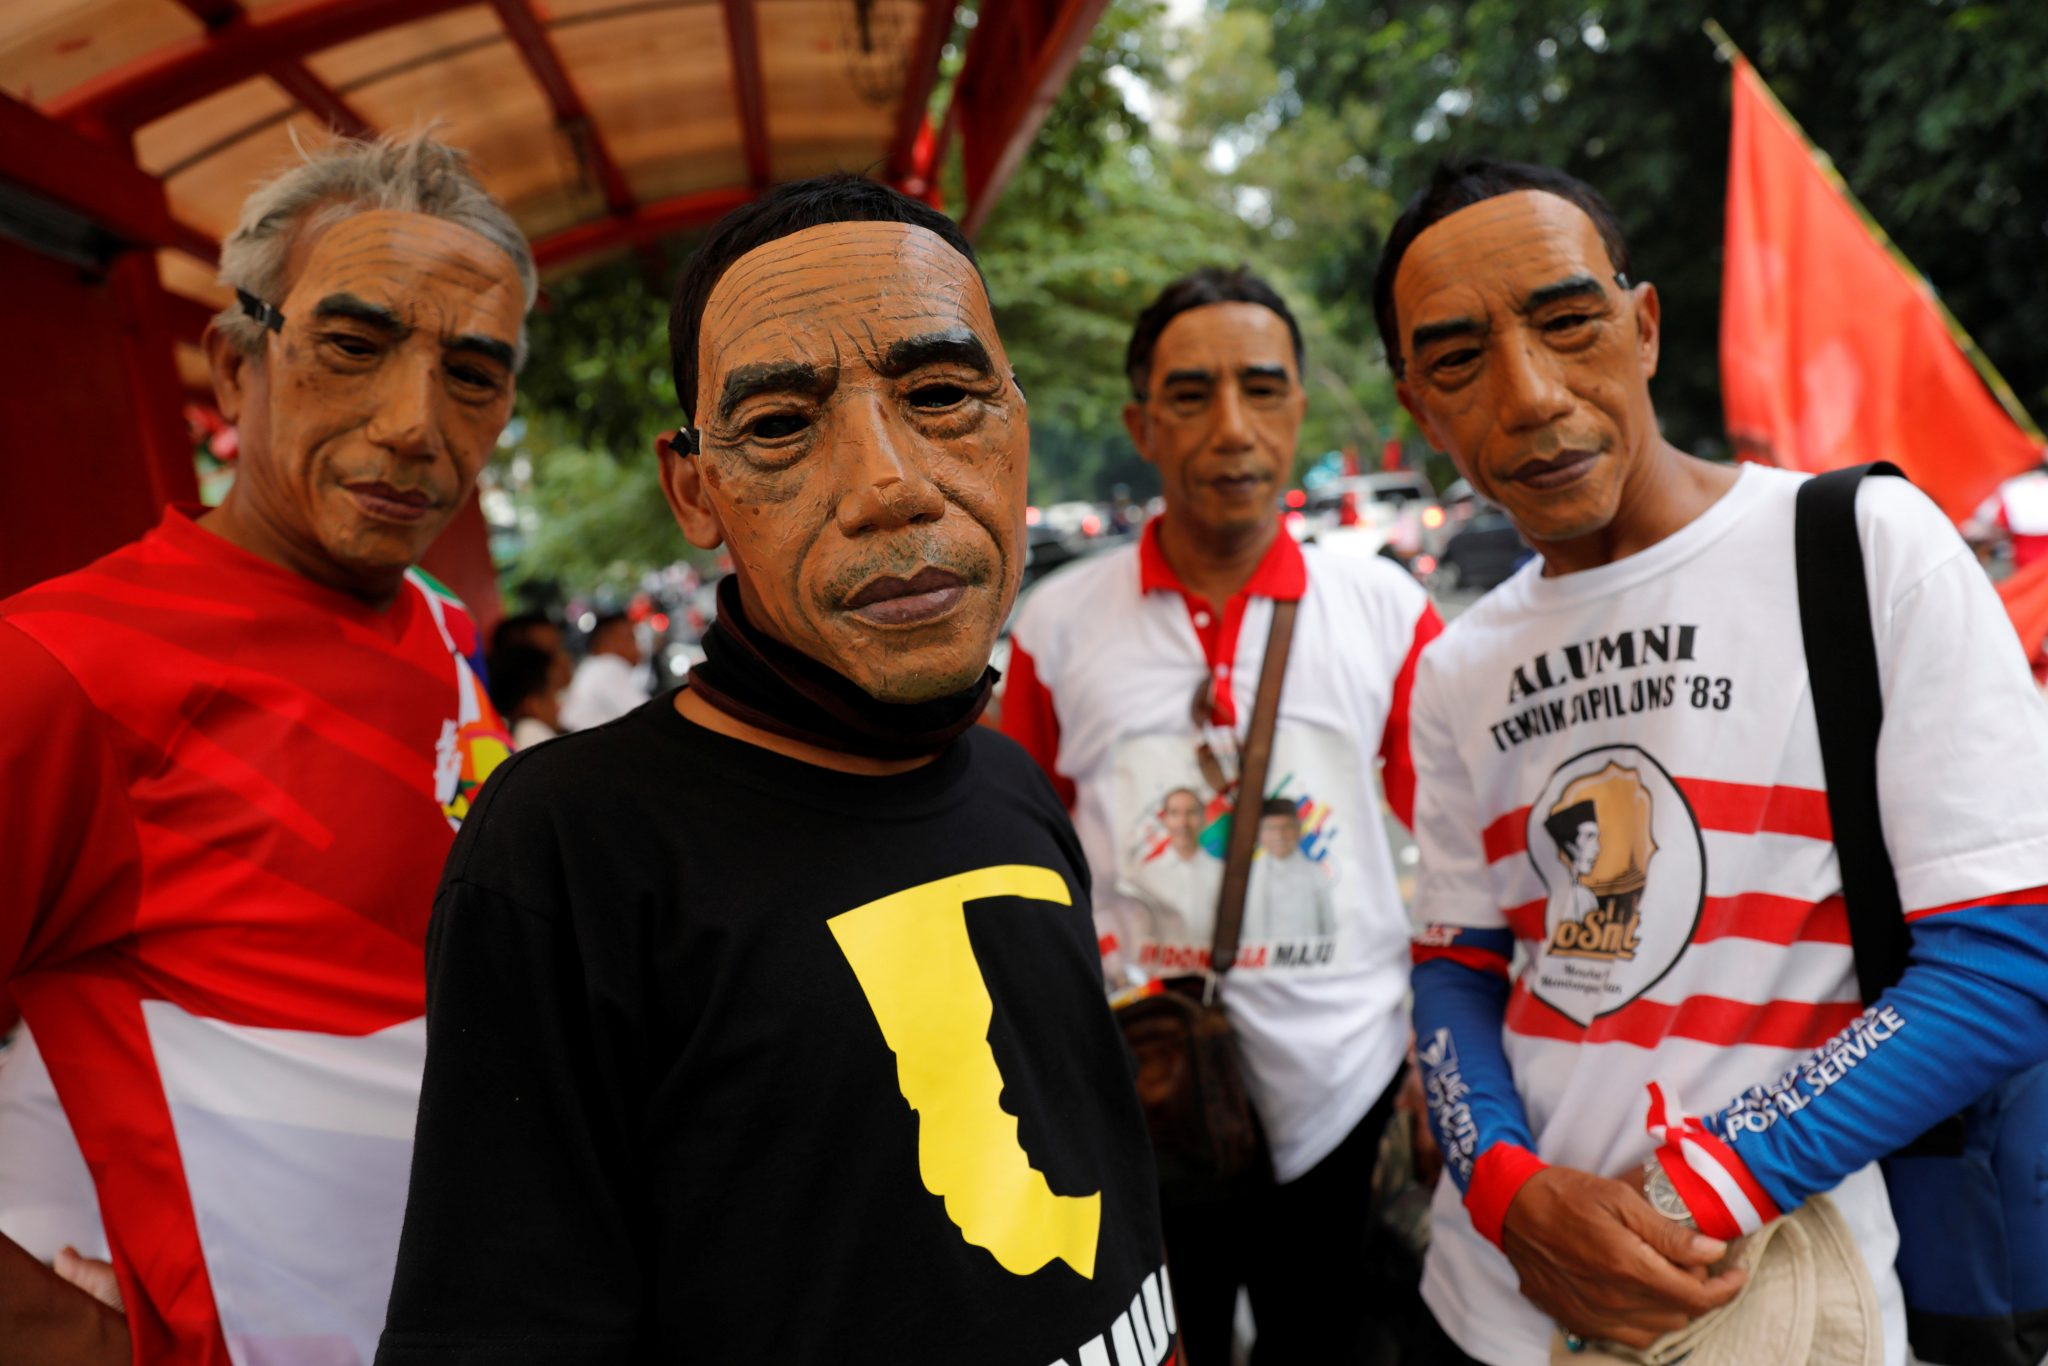 Second thoughts about Jokowi's second term